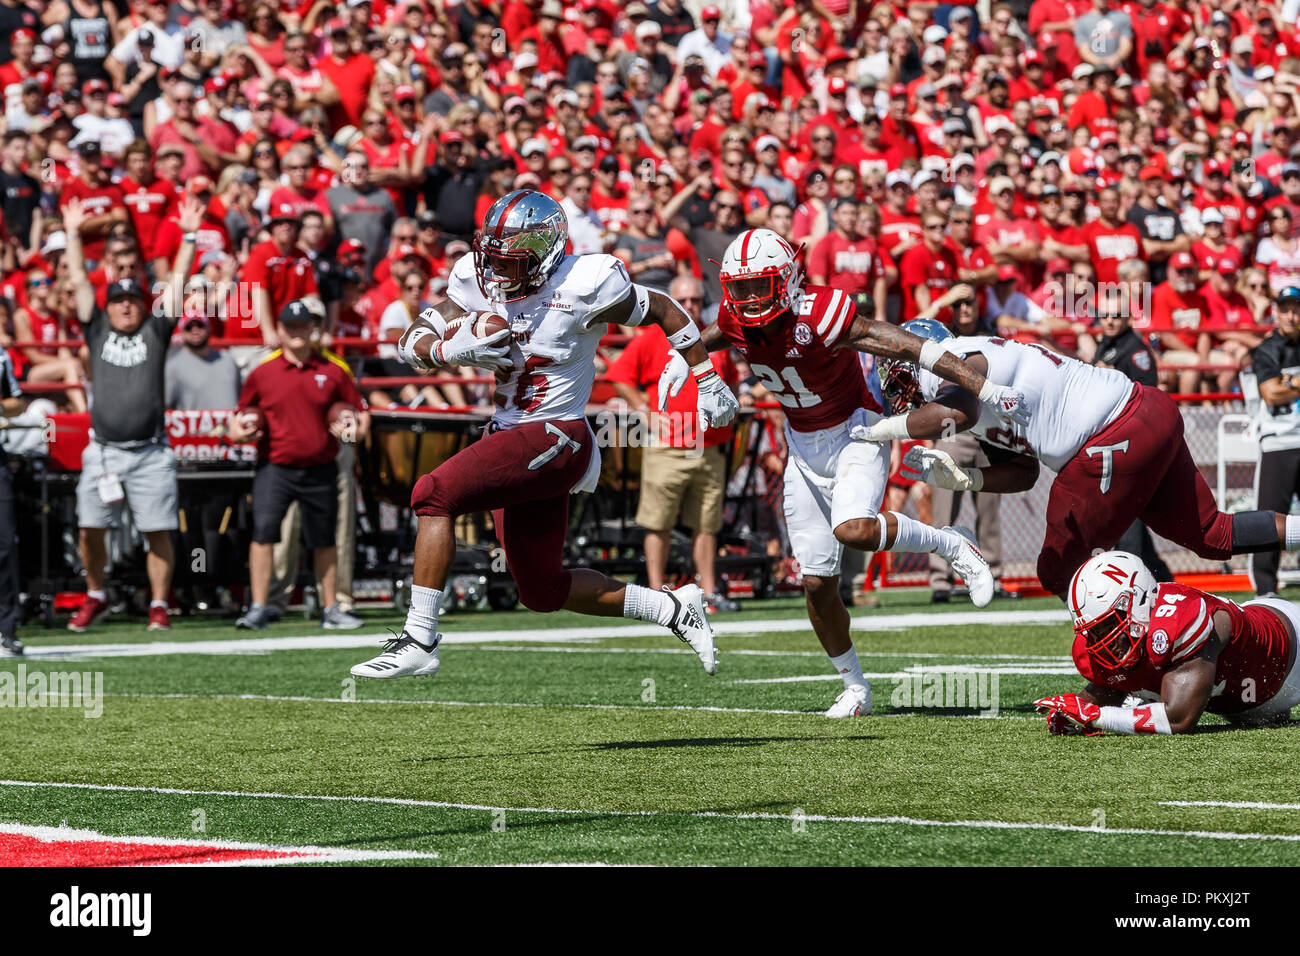 Lincoln, NE. U.S. 15th Sep, 2018. Troy Trojans running back B.J. Smith #26 rushes for his 4th quarter touchdown during a NCAA Division 1 football game between Troy Trojans and the Nebraska Cornhuskers at Memorial Stadium in Lincoln, NE.Attendance: 89,360.Troy won 24-19.Michael Spomer/Cal Sport Media/Alamy Live News - Stock Image